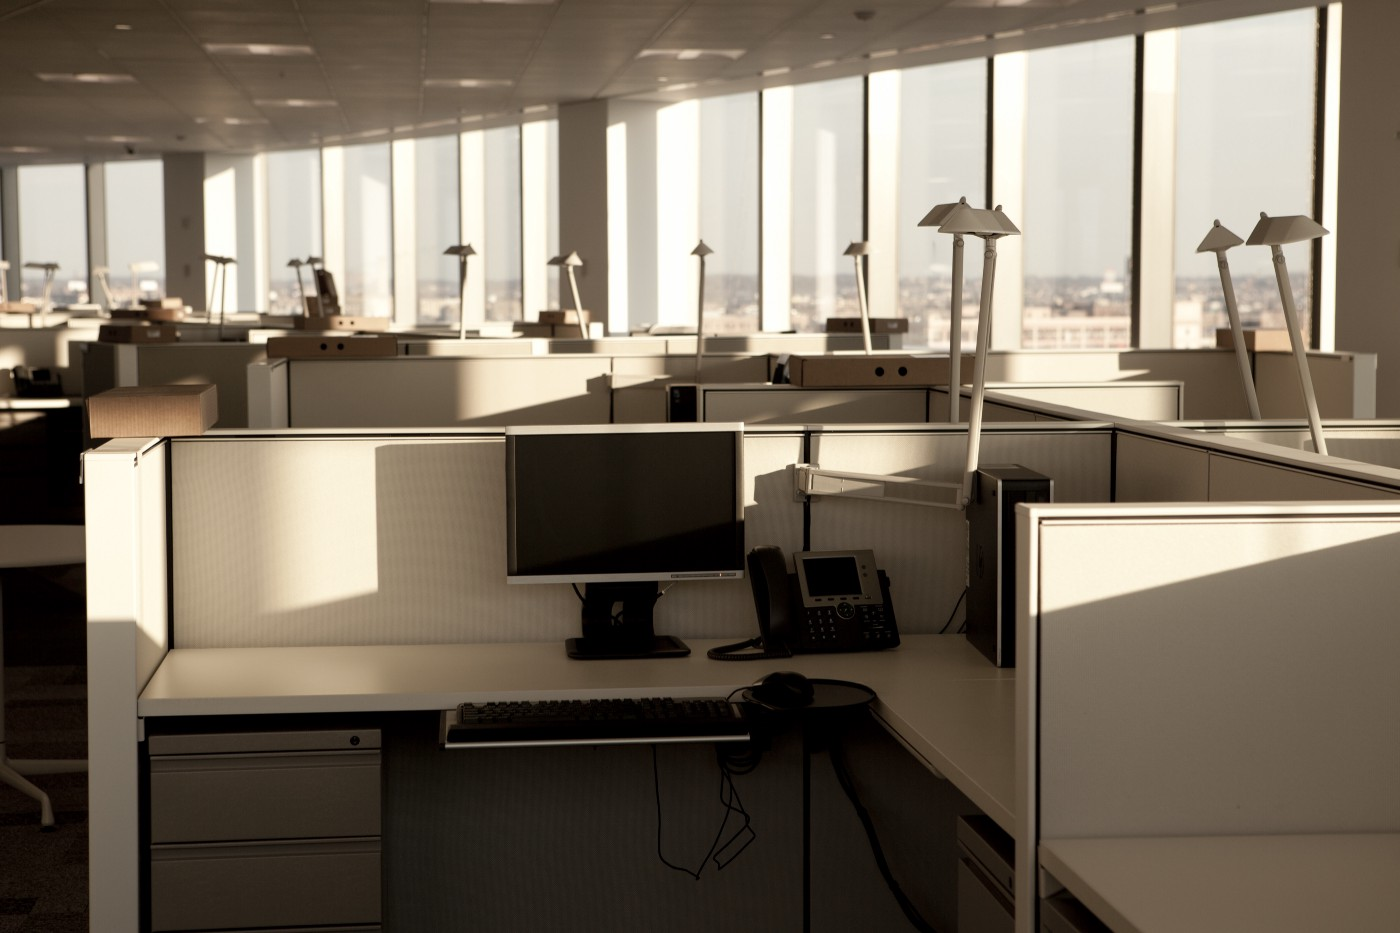 An office with rows of empty cubicles. Desks are cleared out, with natural sunlight shining in from the windows.